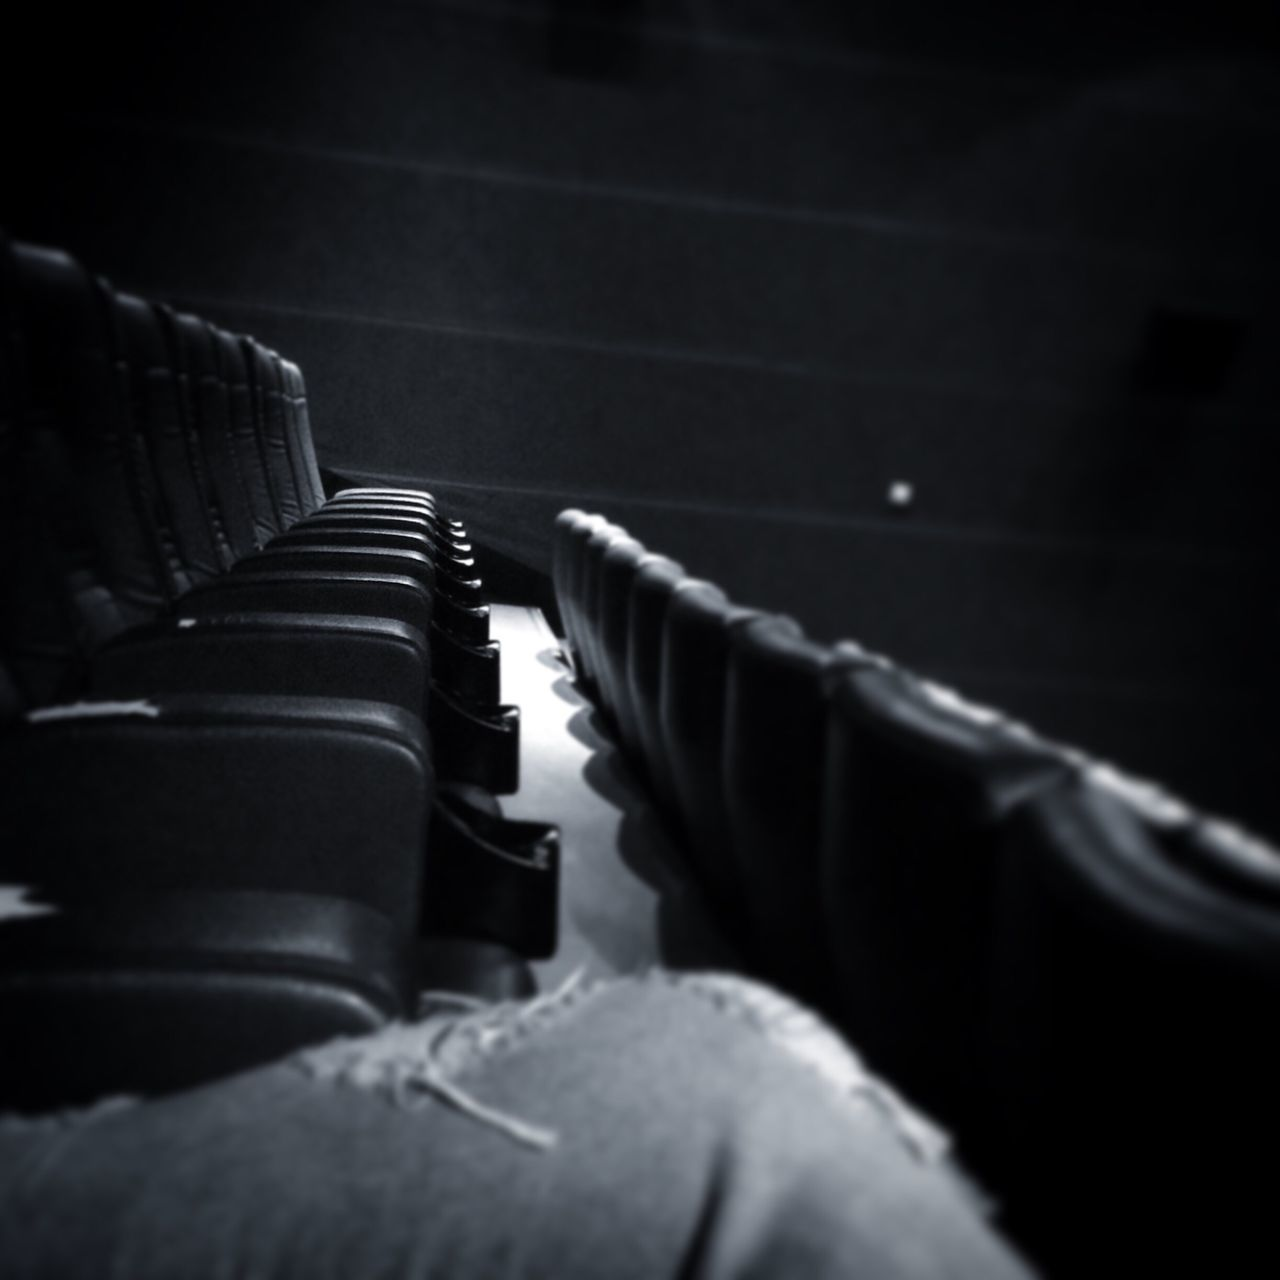 in a row, indoors, seat, no people, auditorium, close-up, day, film industry